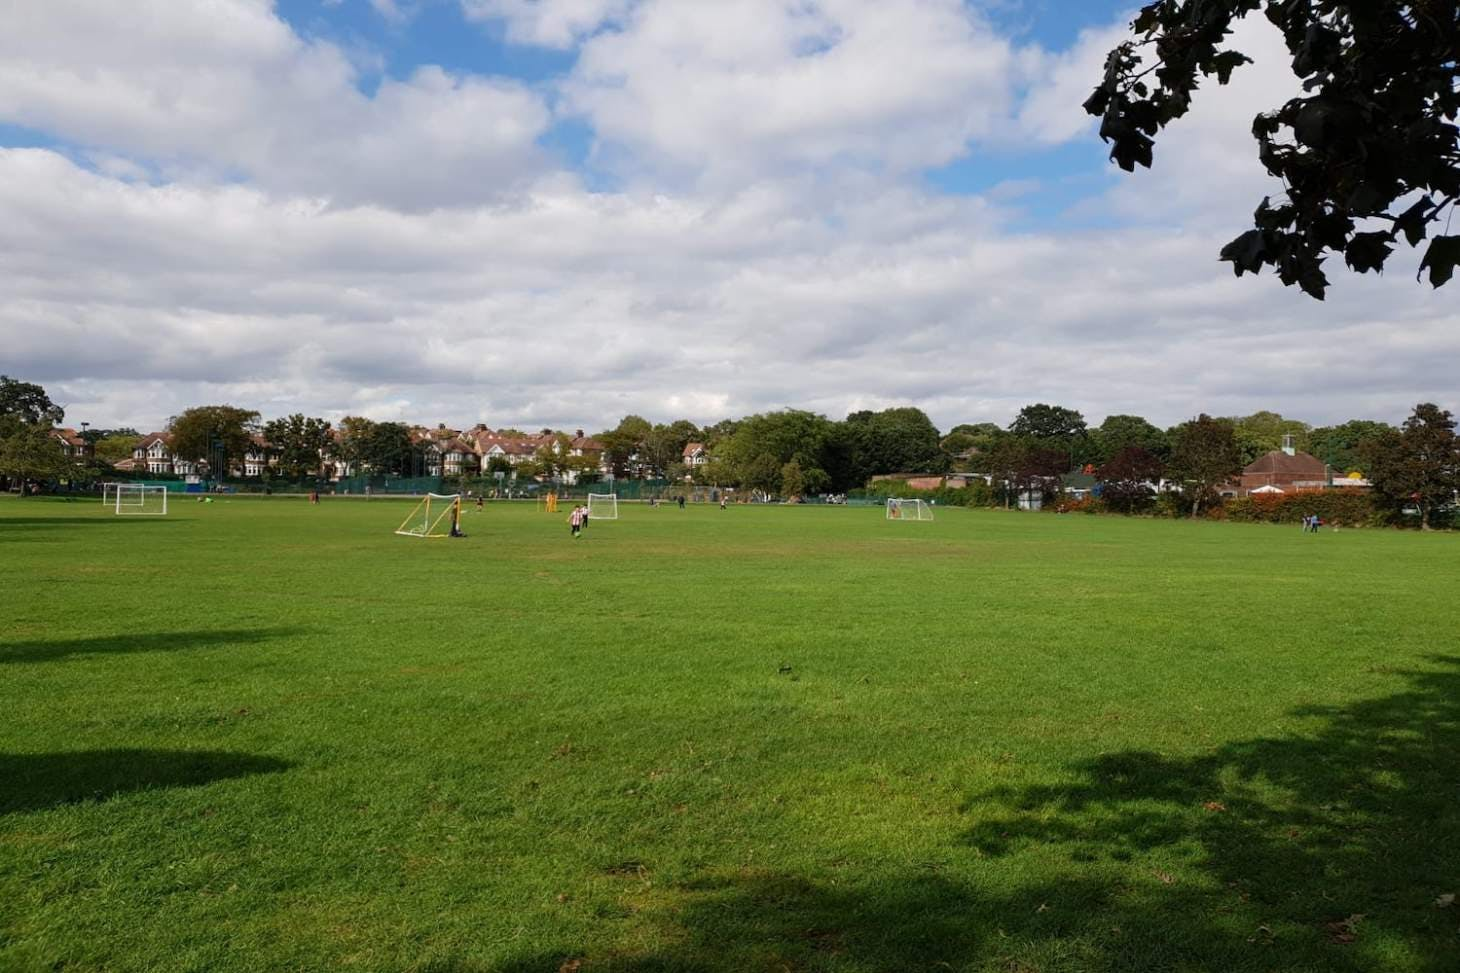 Albert Road Recreation Ground 7 a side | Grass football pitch